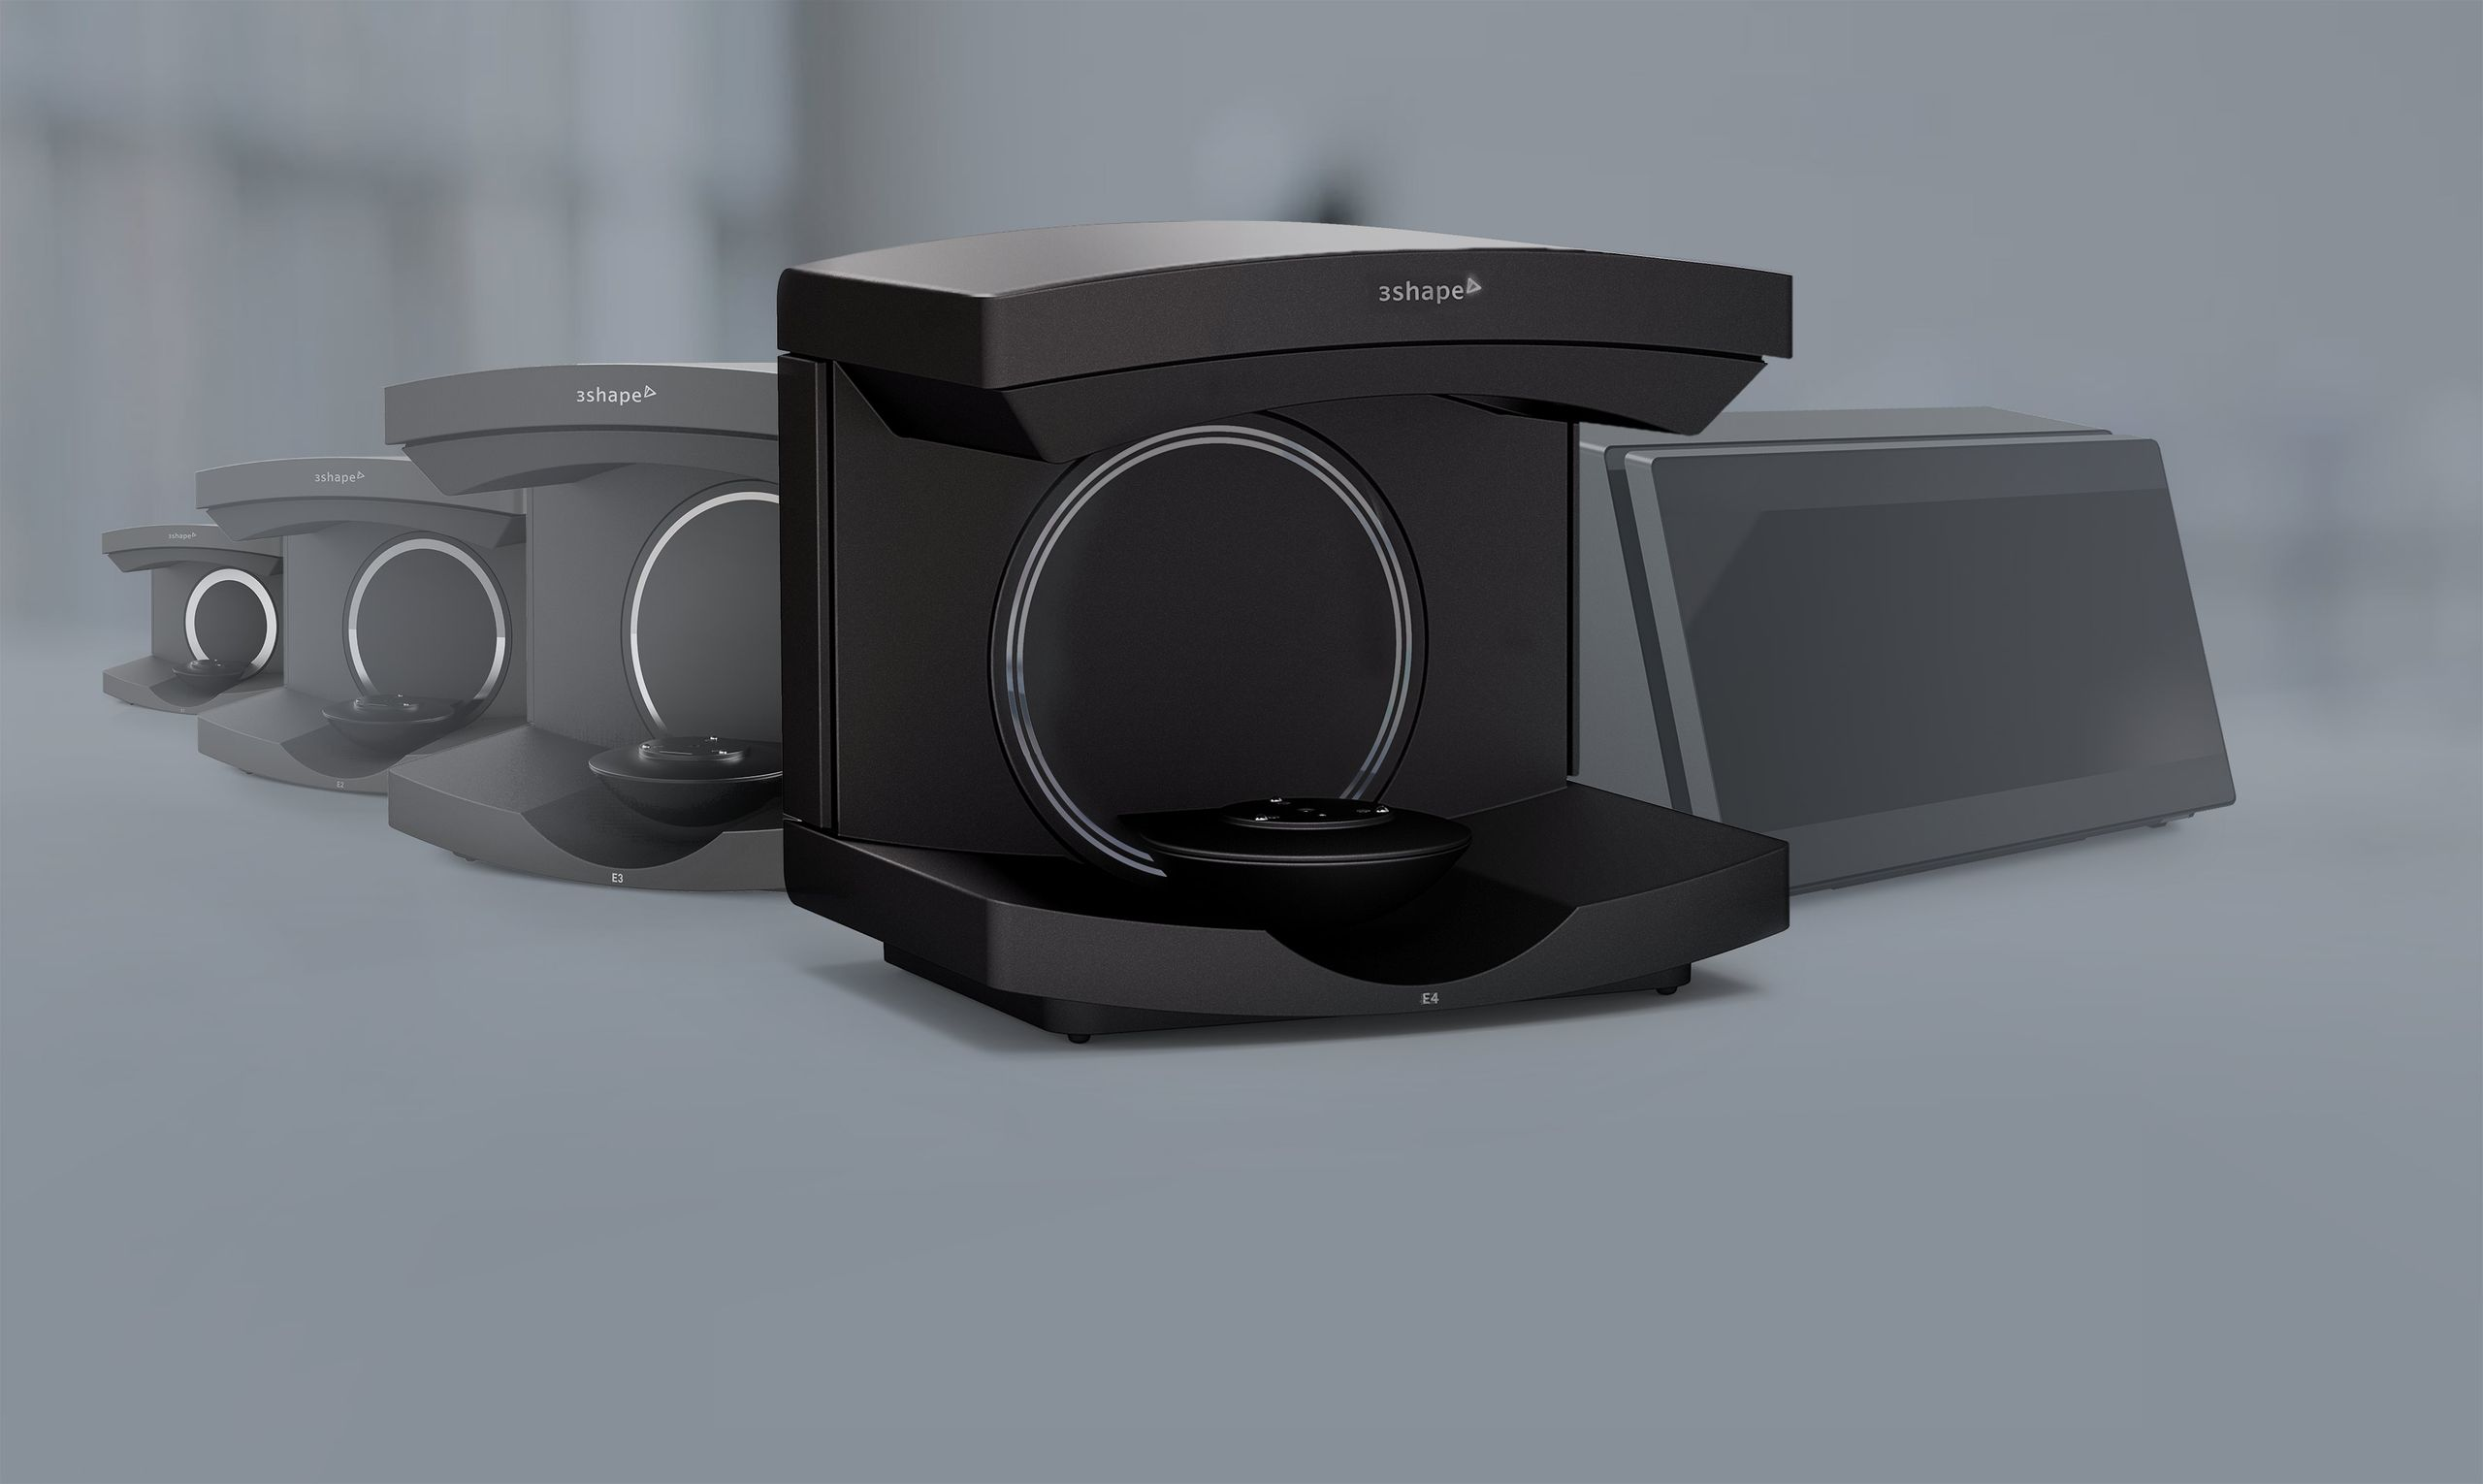 3shape lab scanners and all-in-one scanner